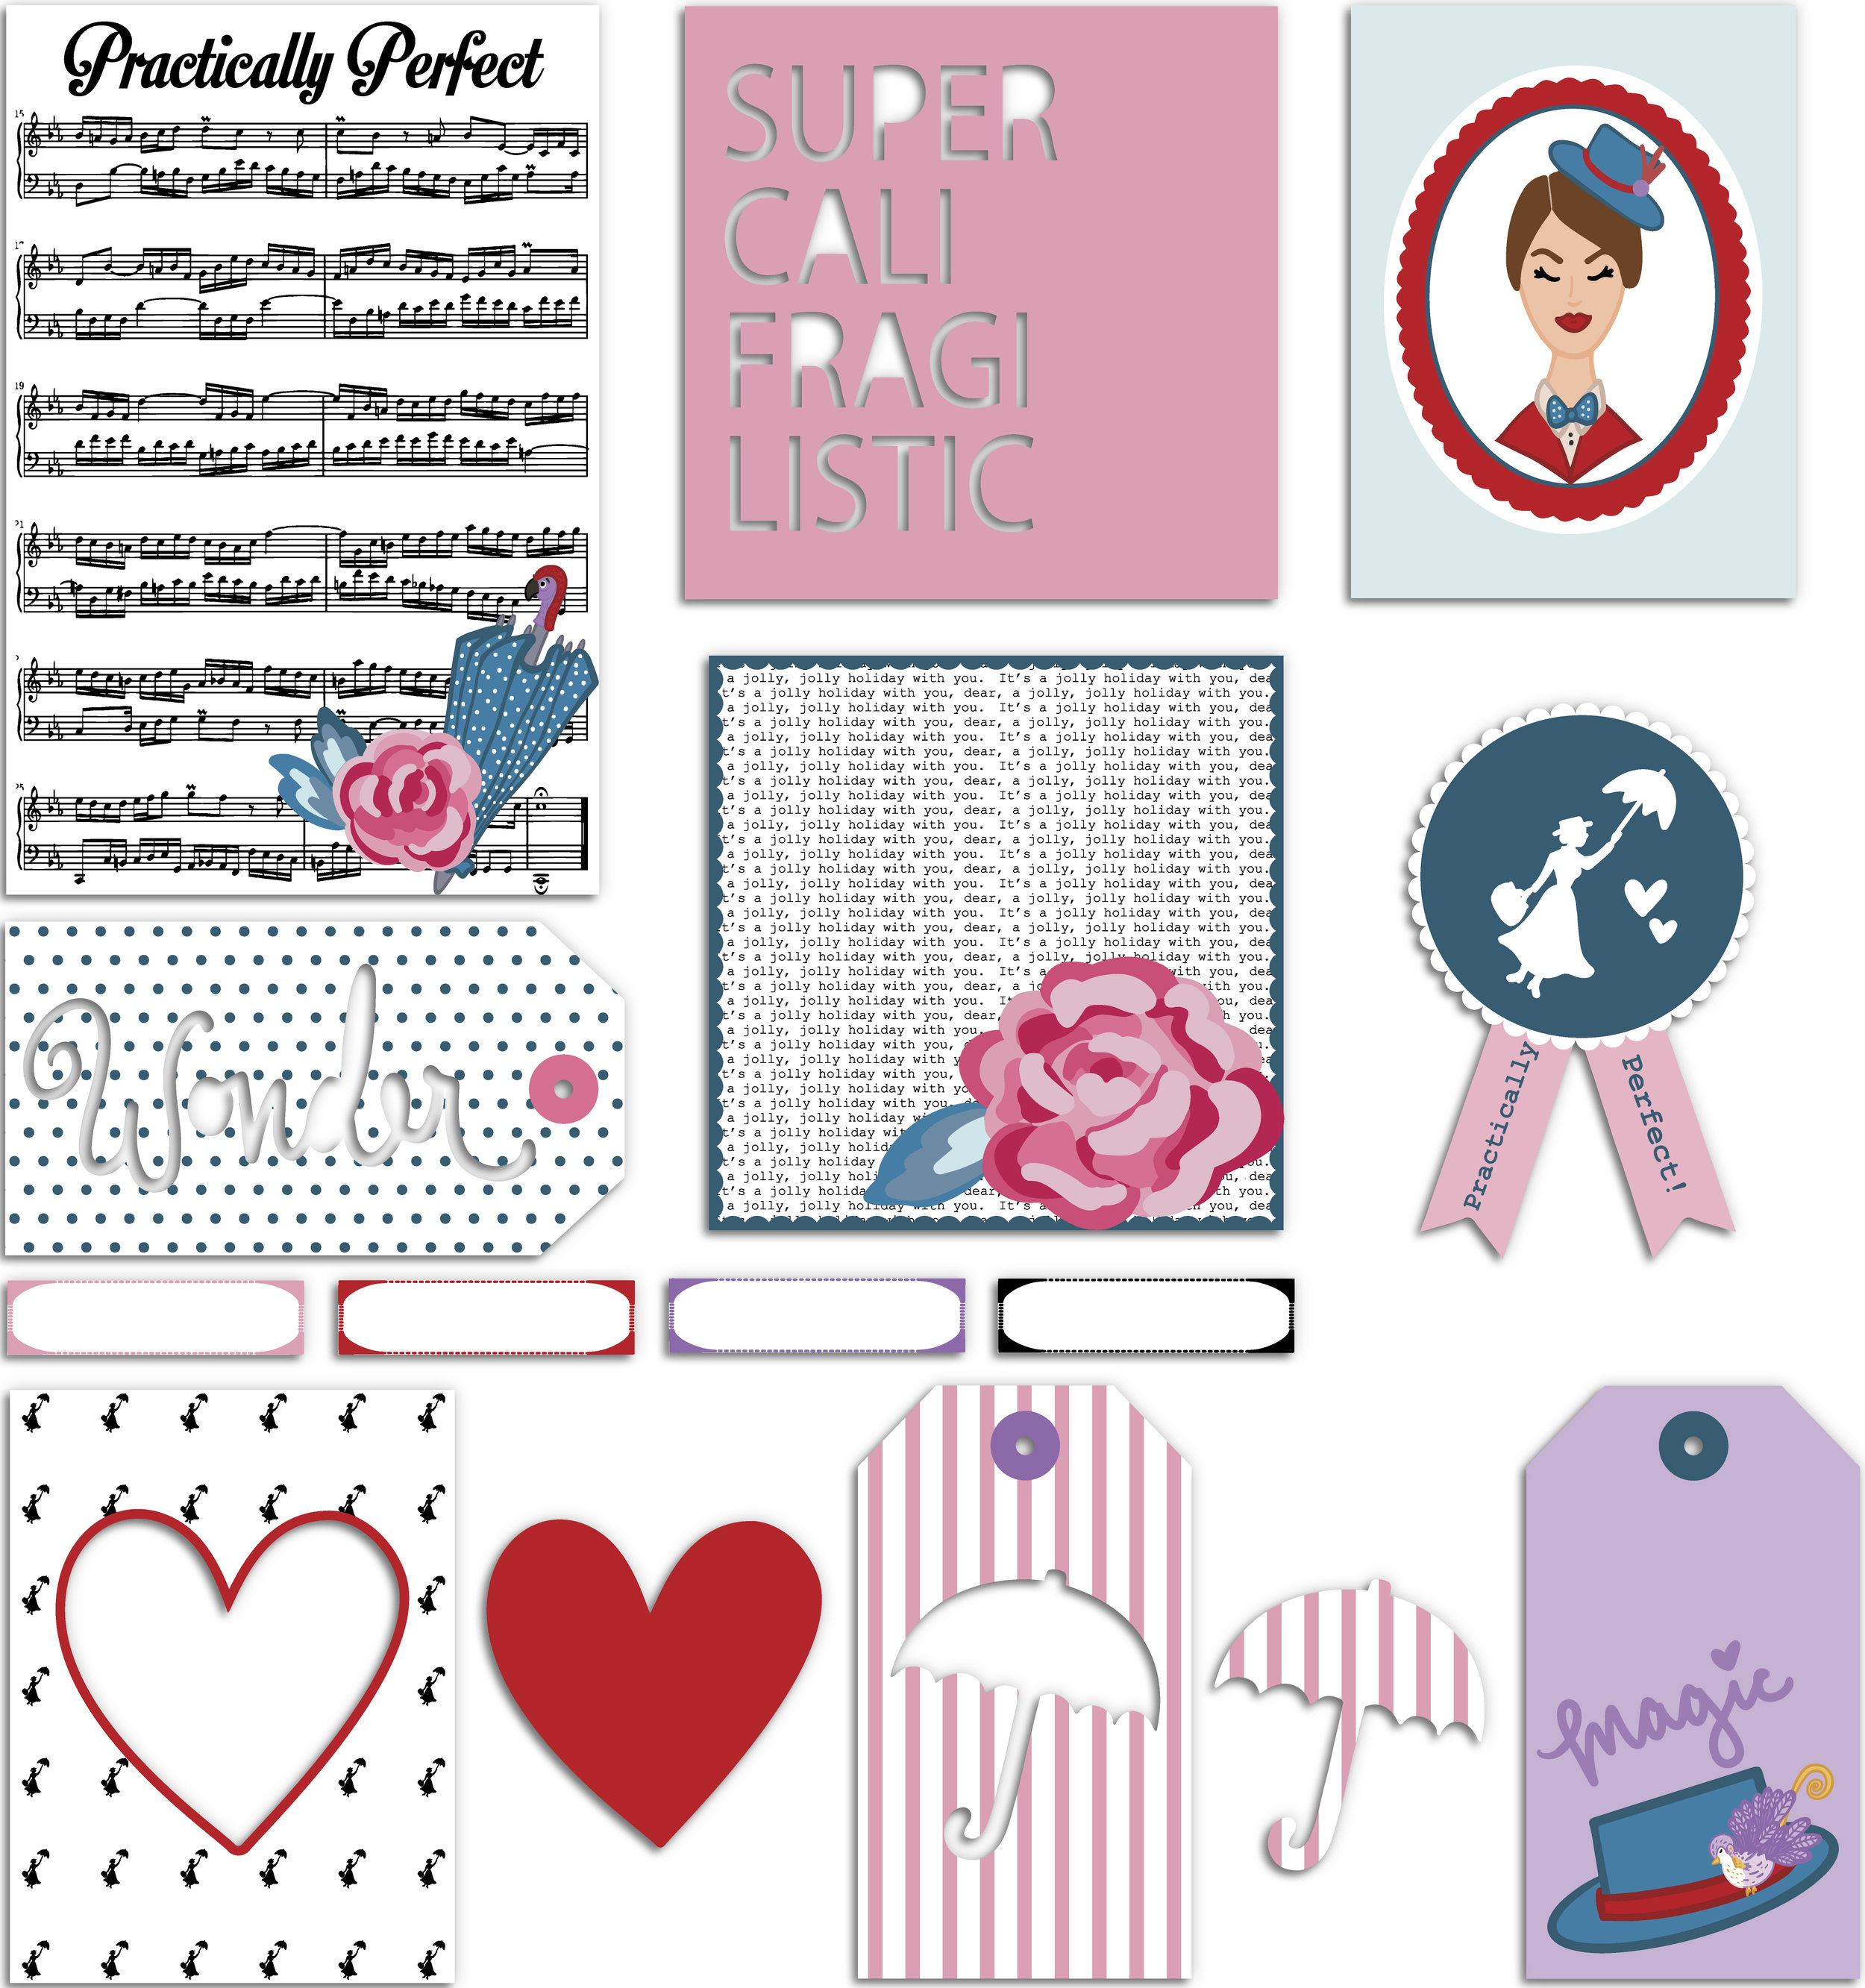 Practically Perfect - Stationery Pack with shadows.jpg